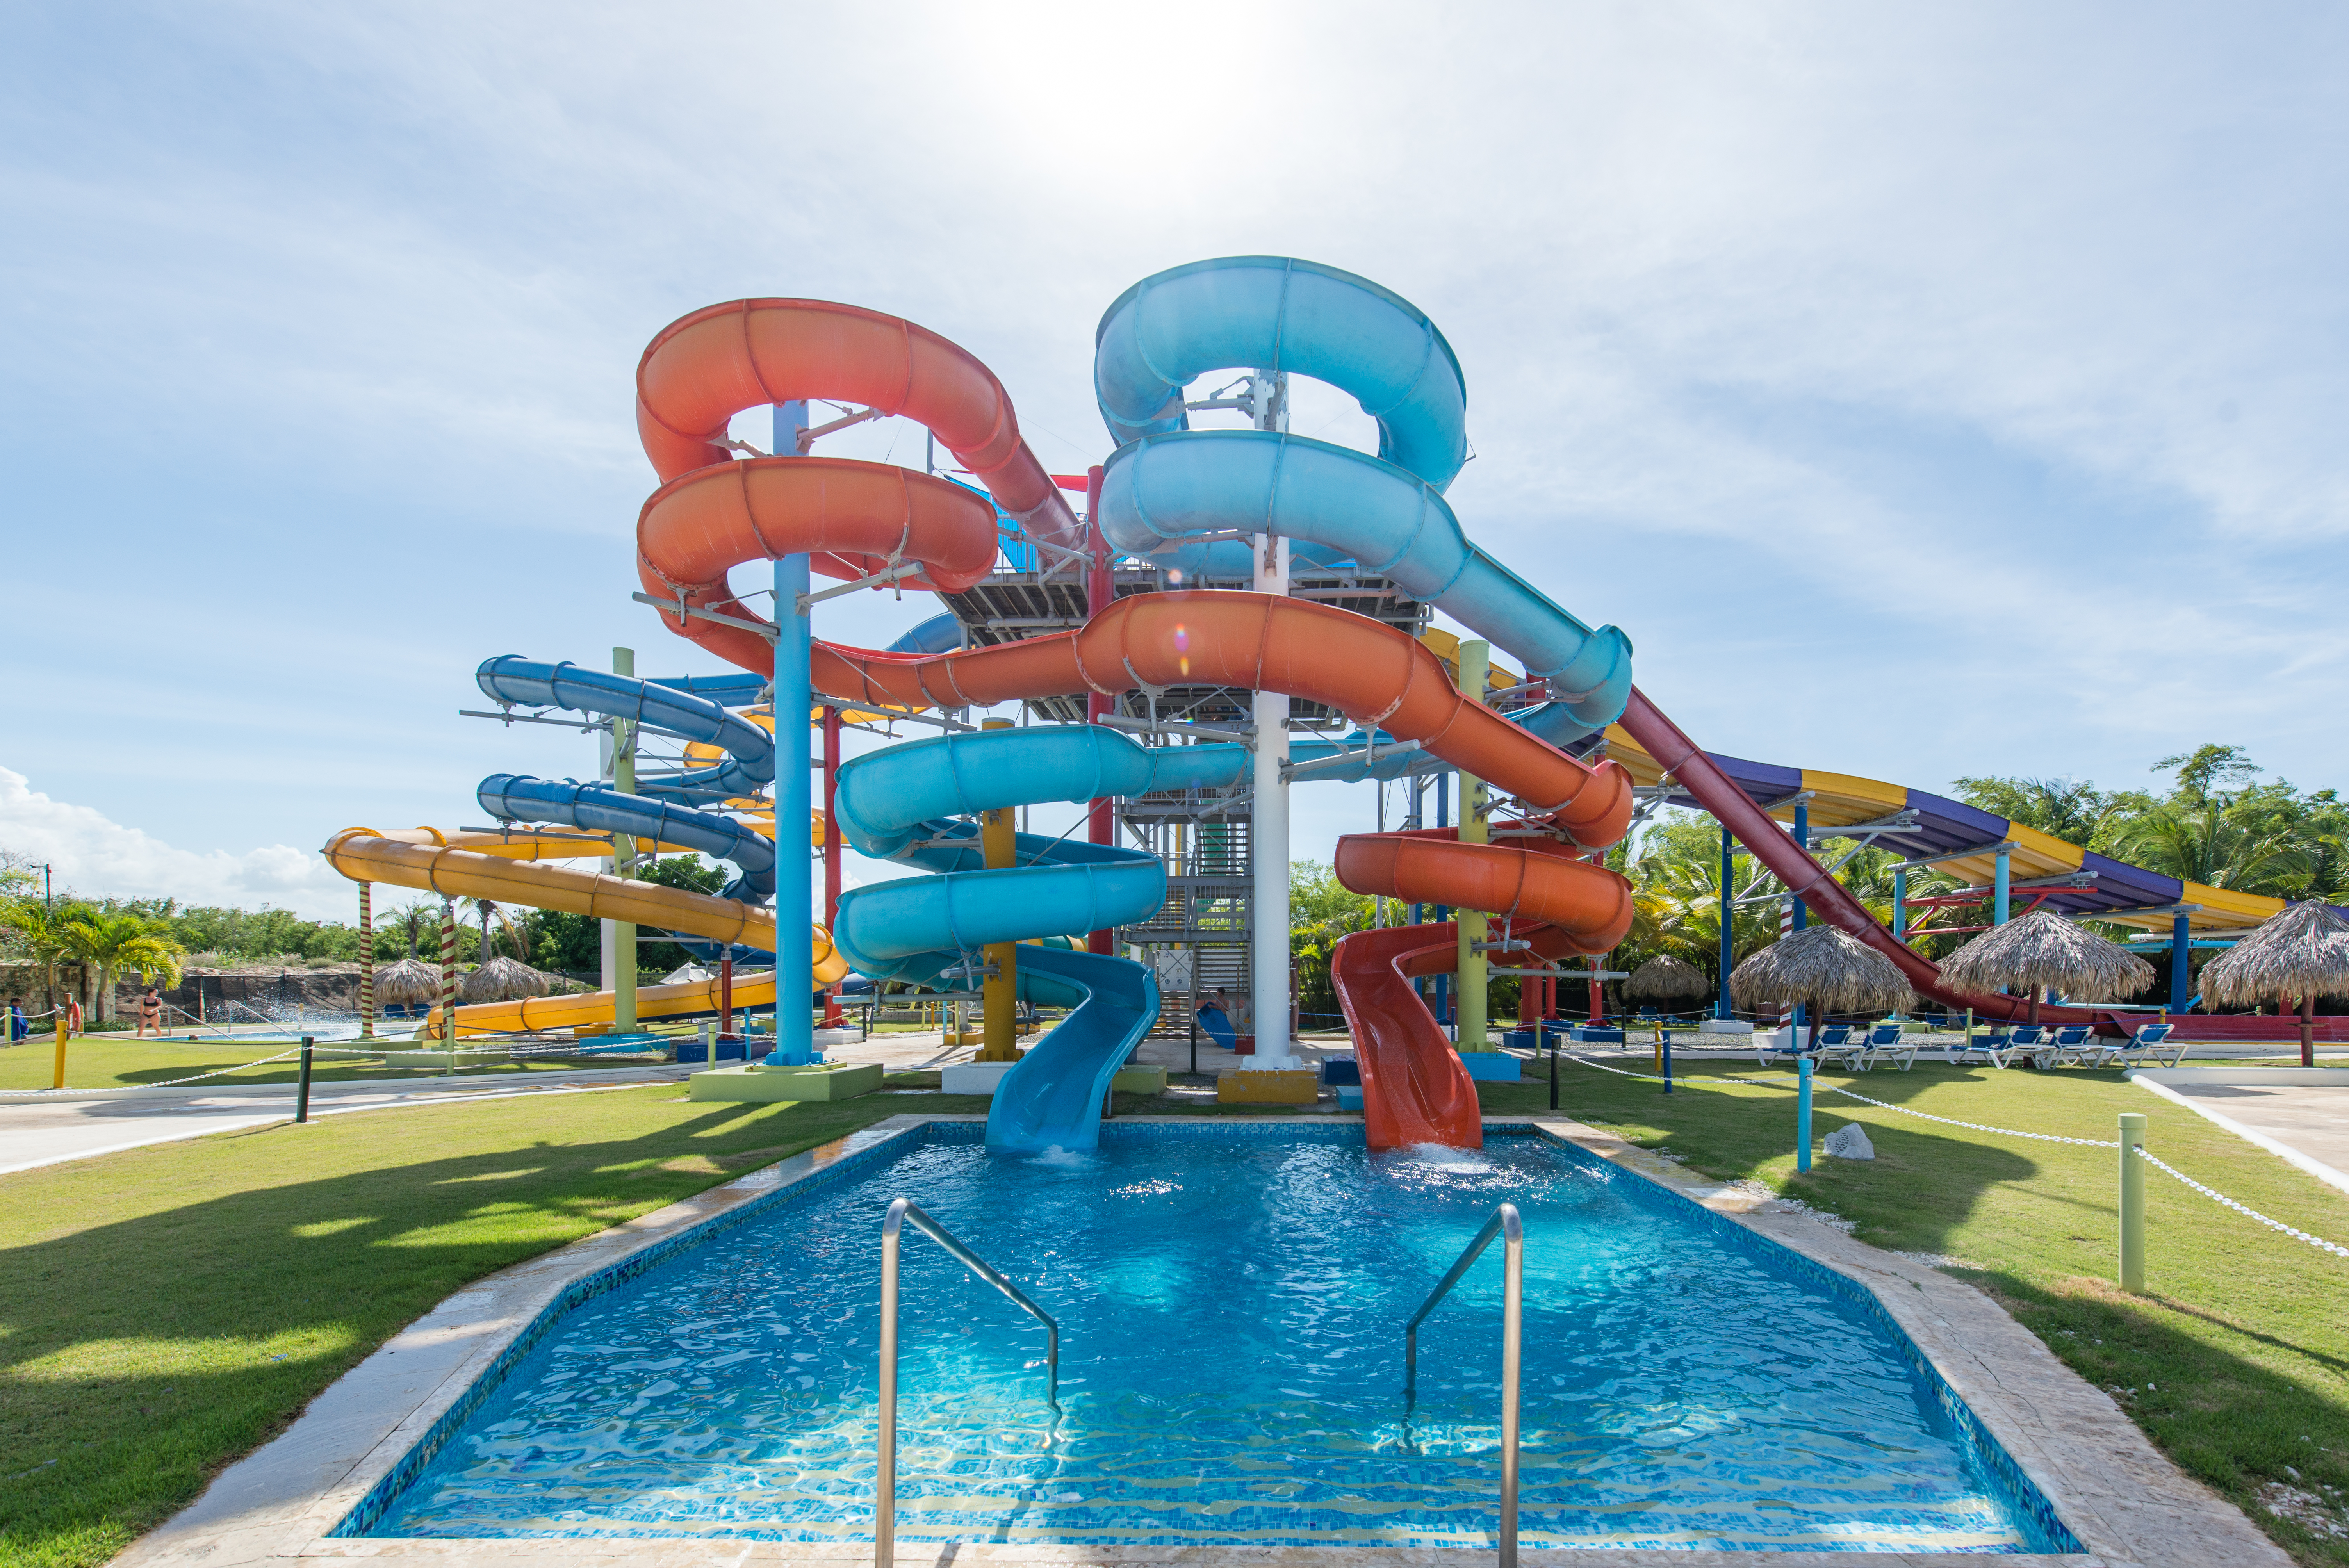 Big waterslides at Aquagames, the water park at Grand Sirenis Punta Cana